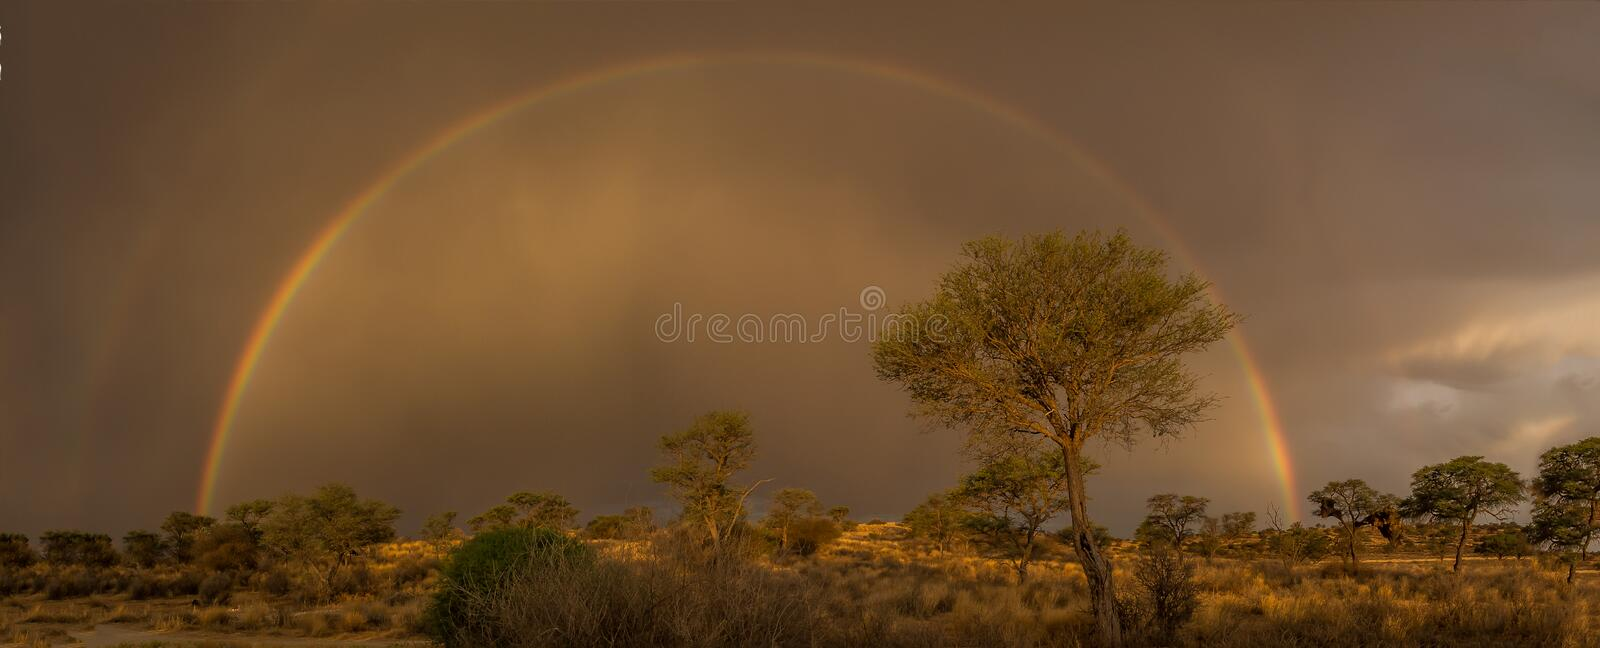 Treasure at the rainbow?. Full rainbow over a thorn tree in the Kgalagadi Transfrontier Park stock images